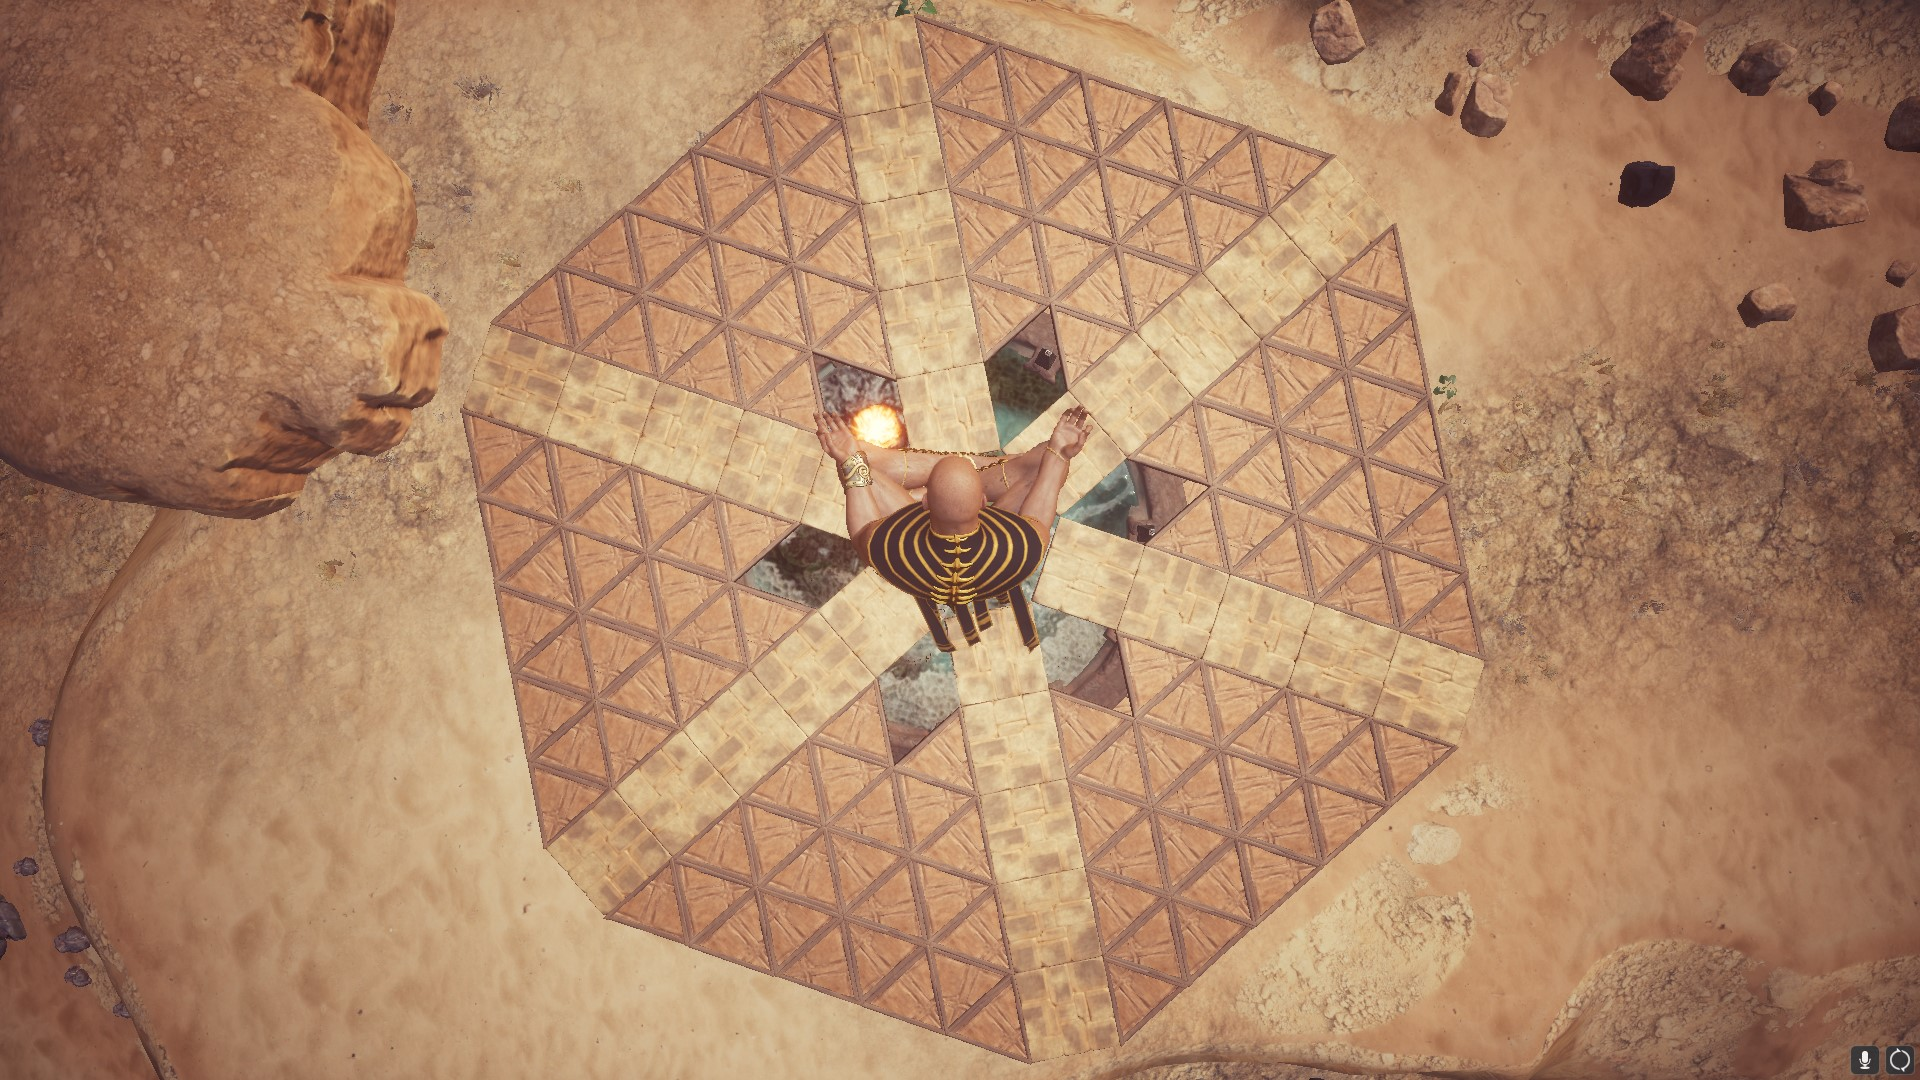 Steam Community Guide Minimum Dimension Requirements For Building Indoor Shrines Updated To Include Map Room